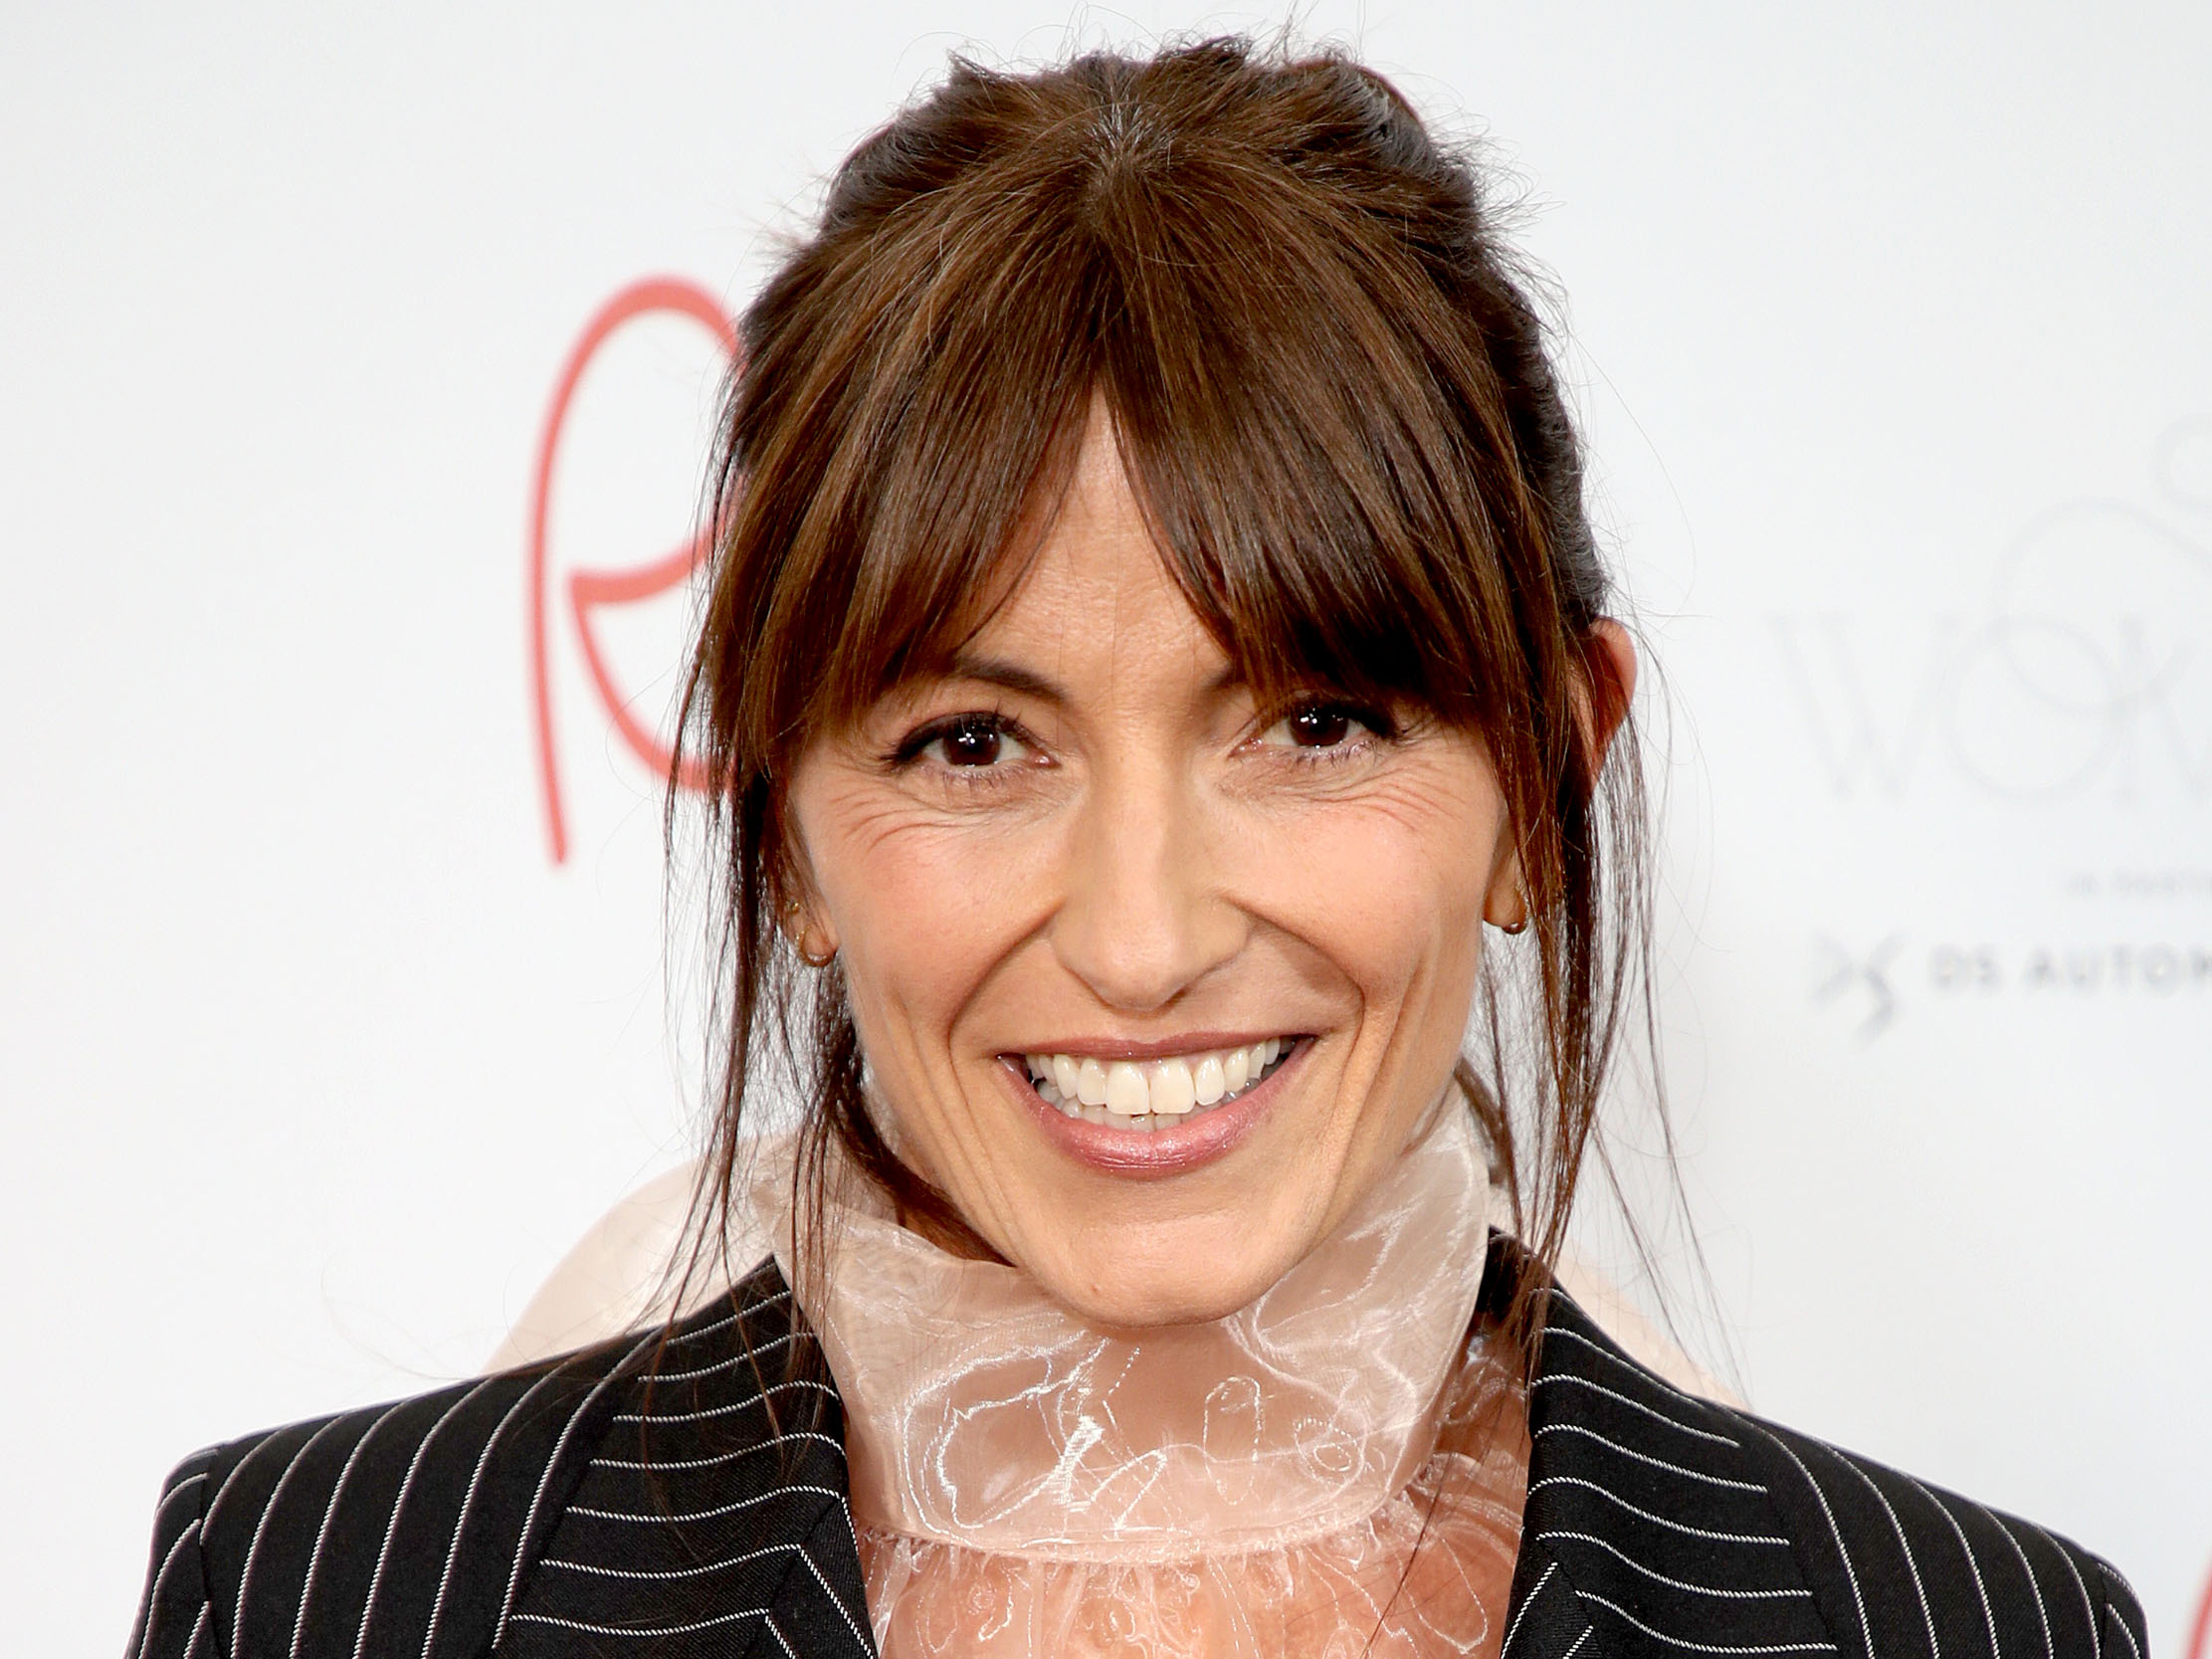 Davina McCall confirms exciting new TV project